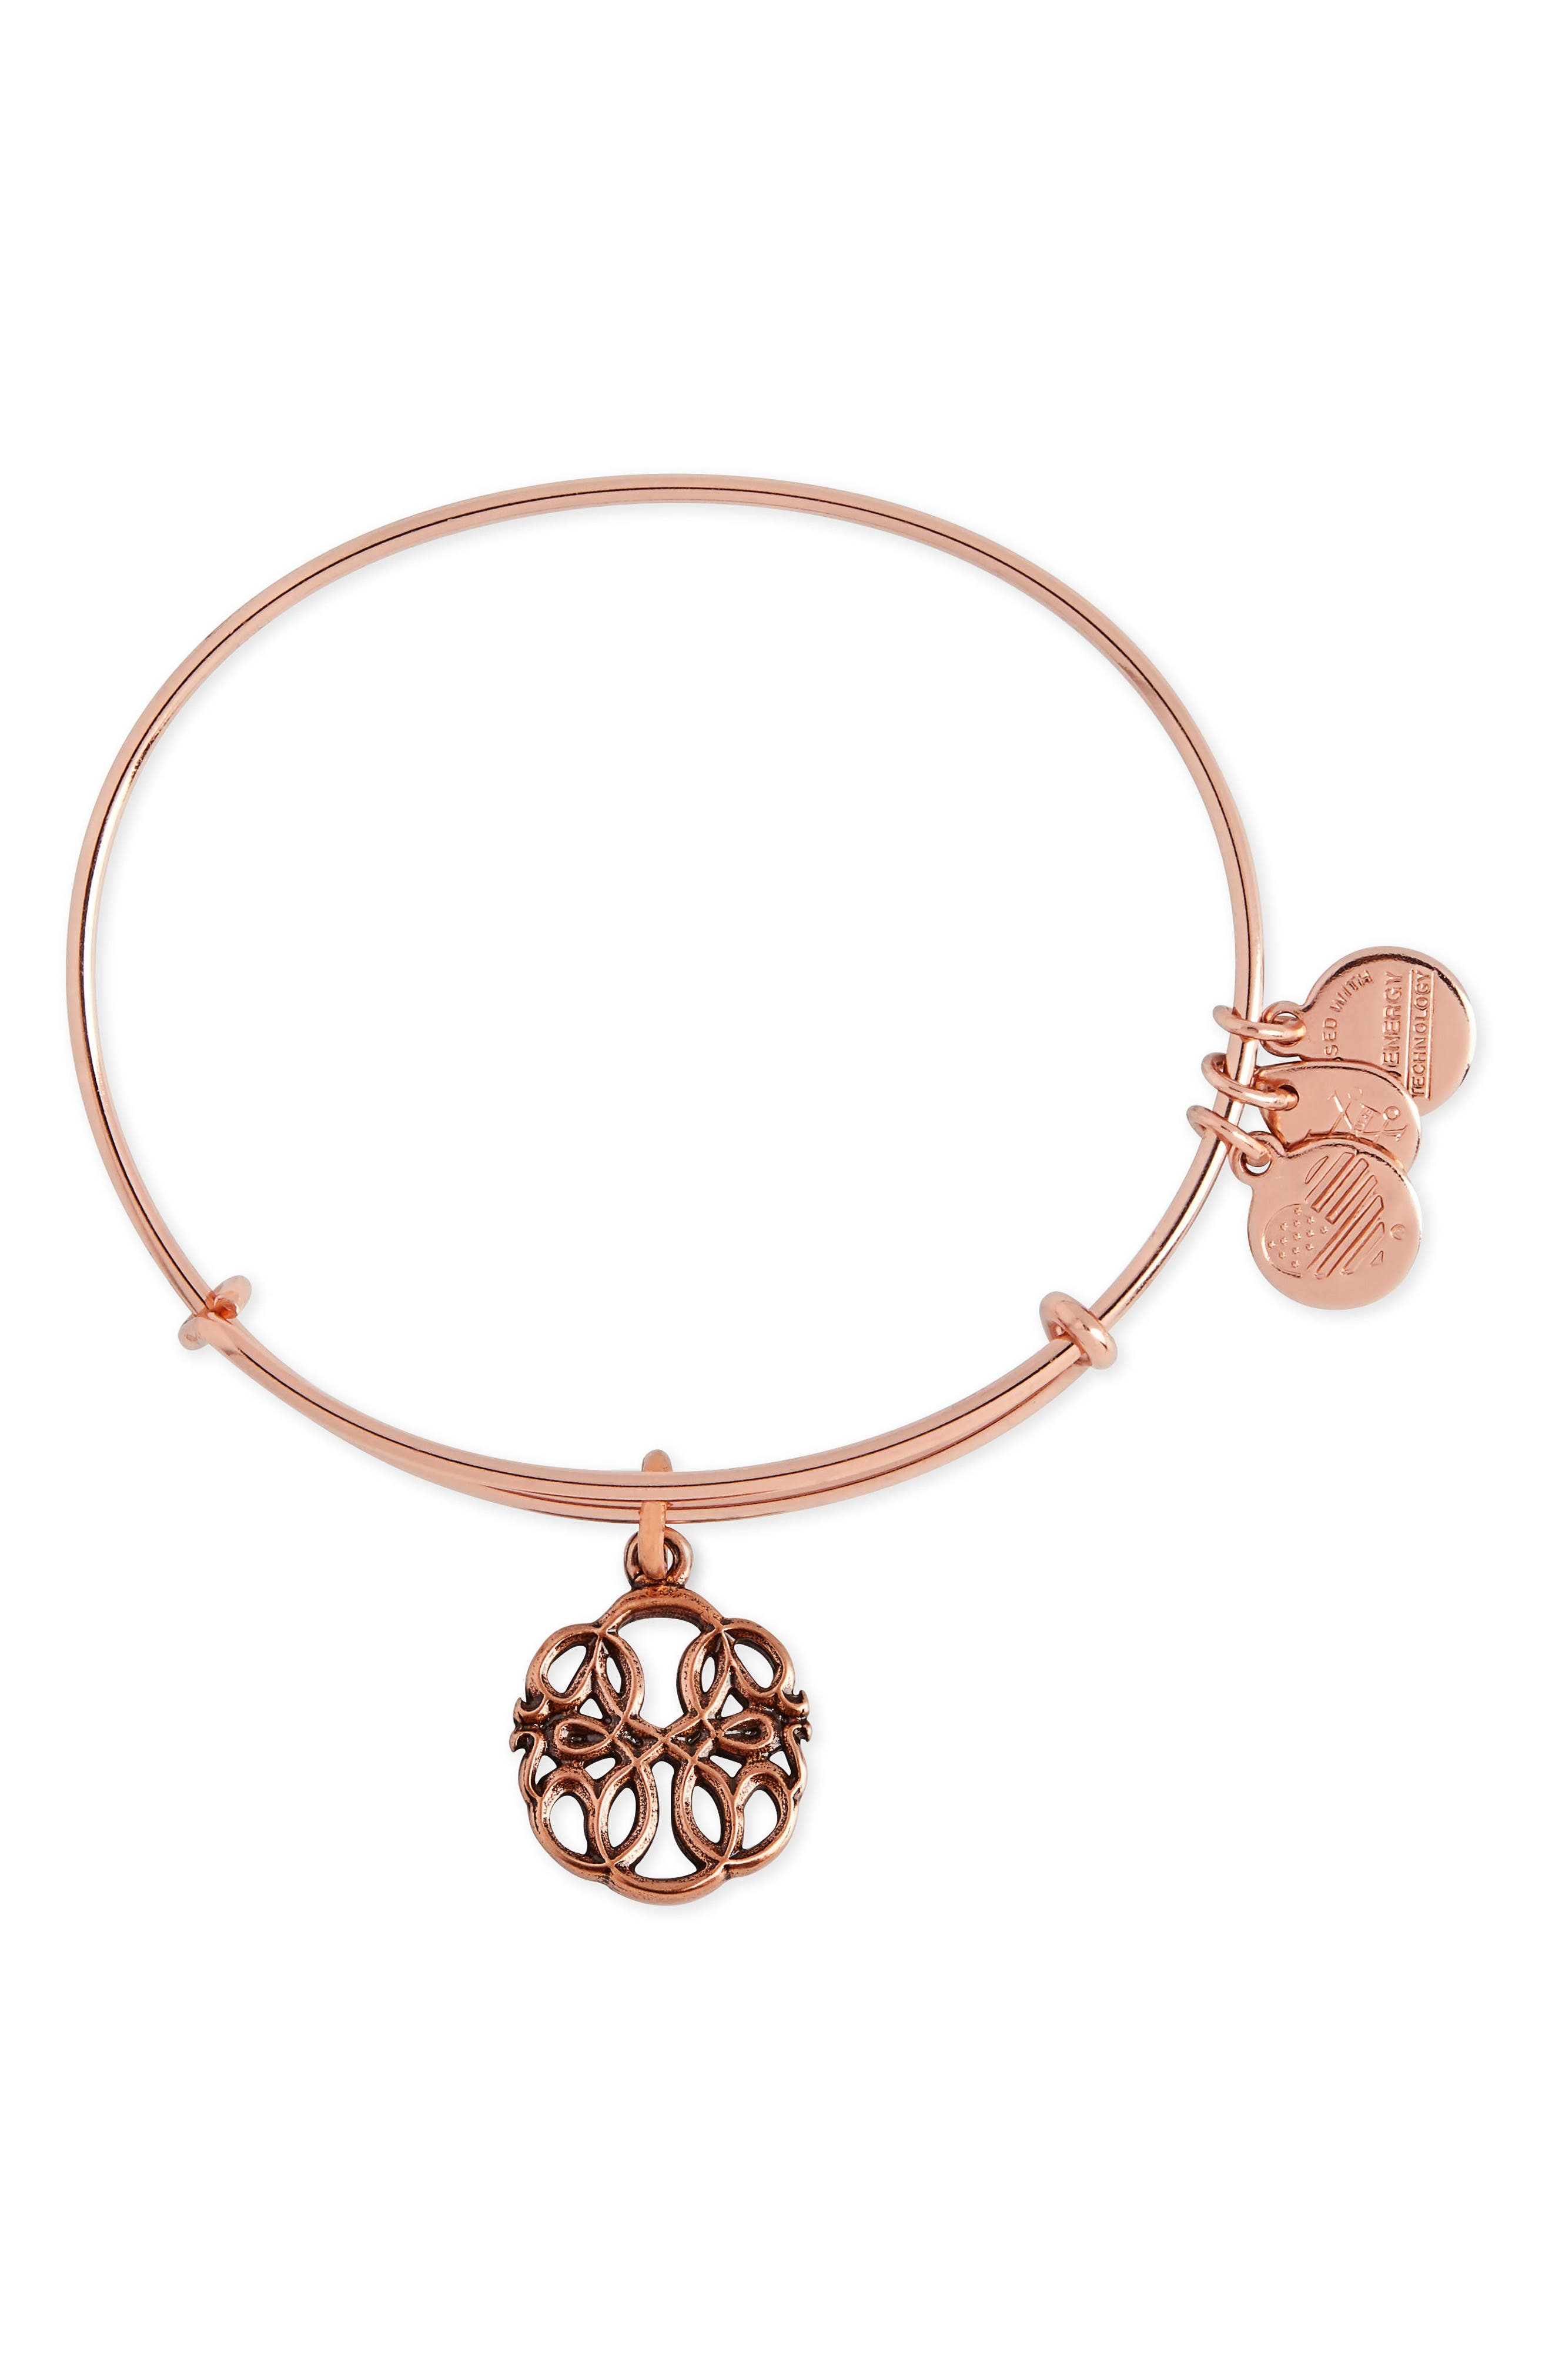 Path of Life Adjustable Wire Bangle,                         Main,                         color, ROSE GOLD